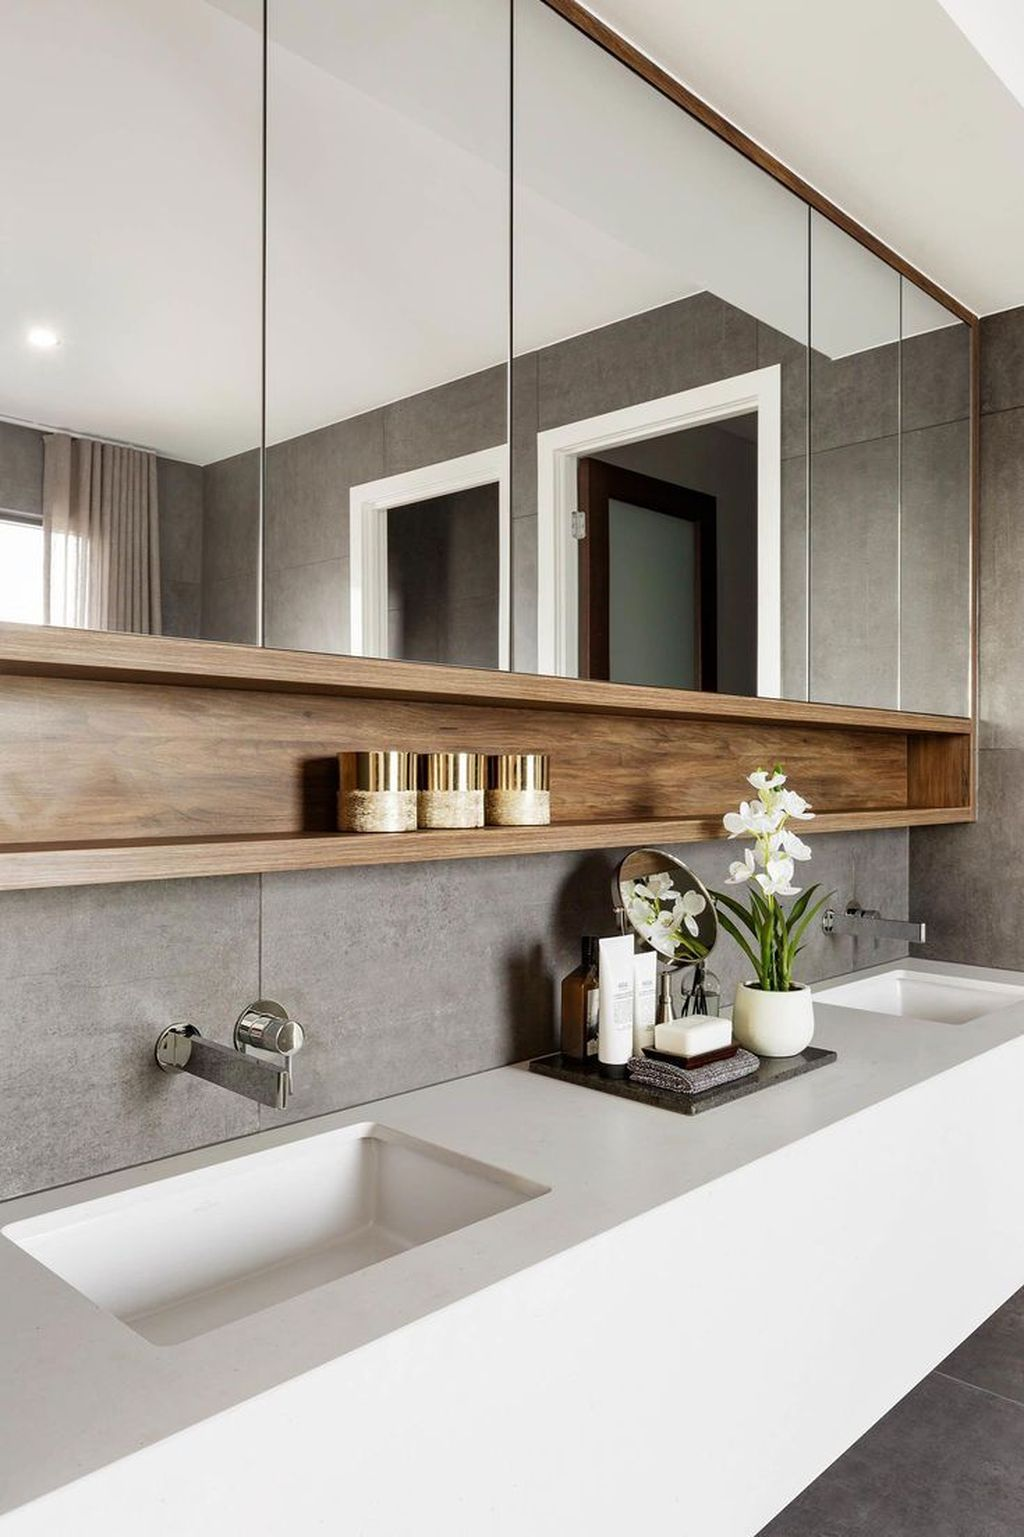 Inspiring Bathroom Interior Design Ideas 03